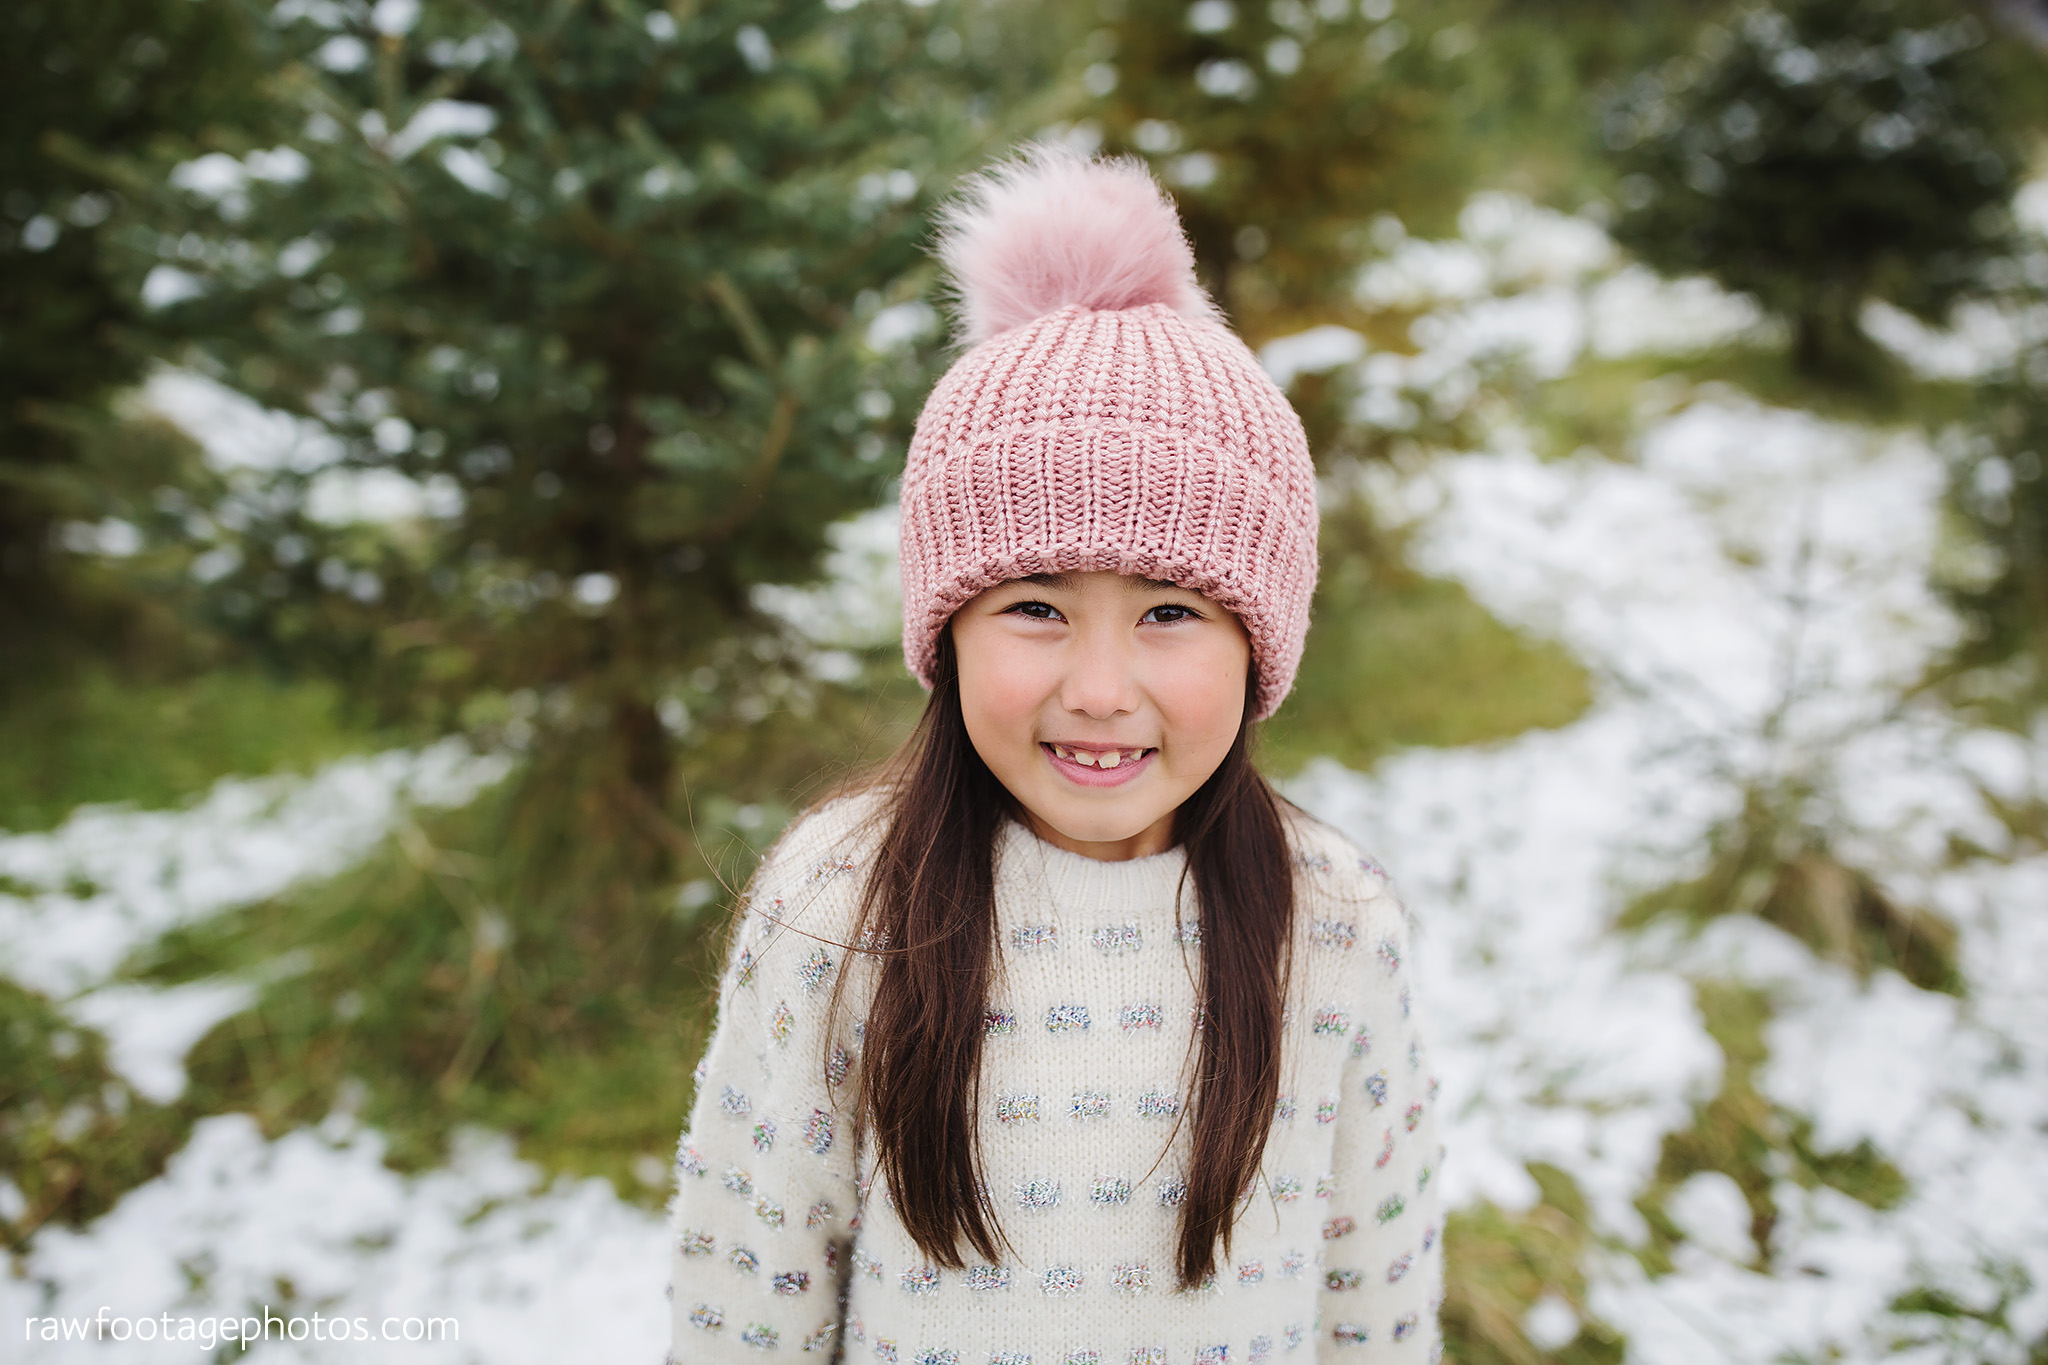 london_ontario_family_photographer-raw_footage_photography-tree_farm_minis-christmas_sessions-winter0005.jpg